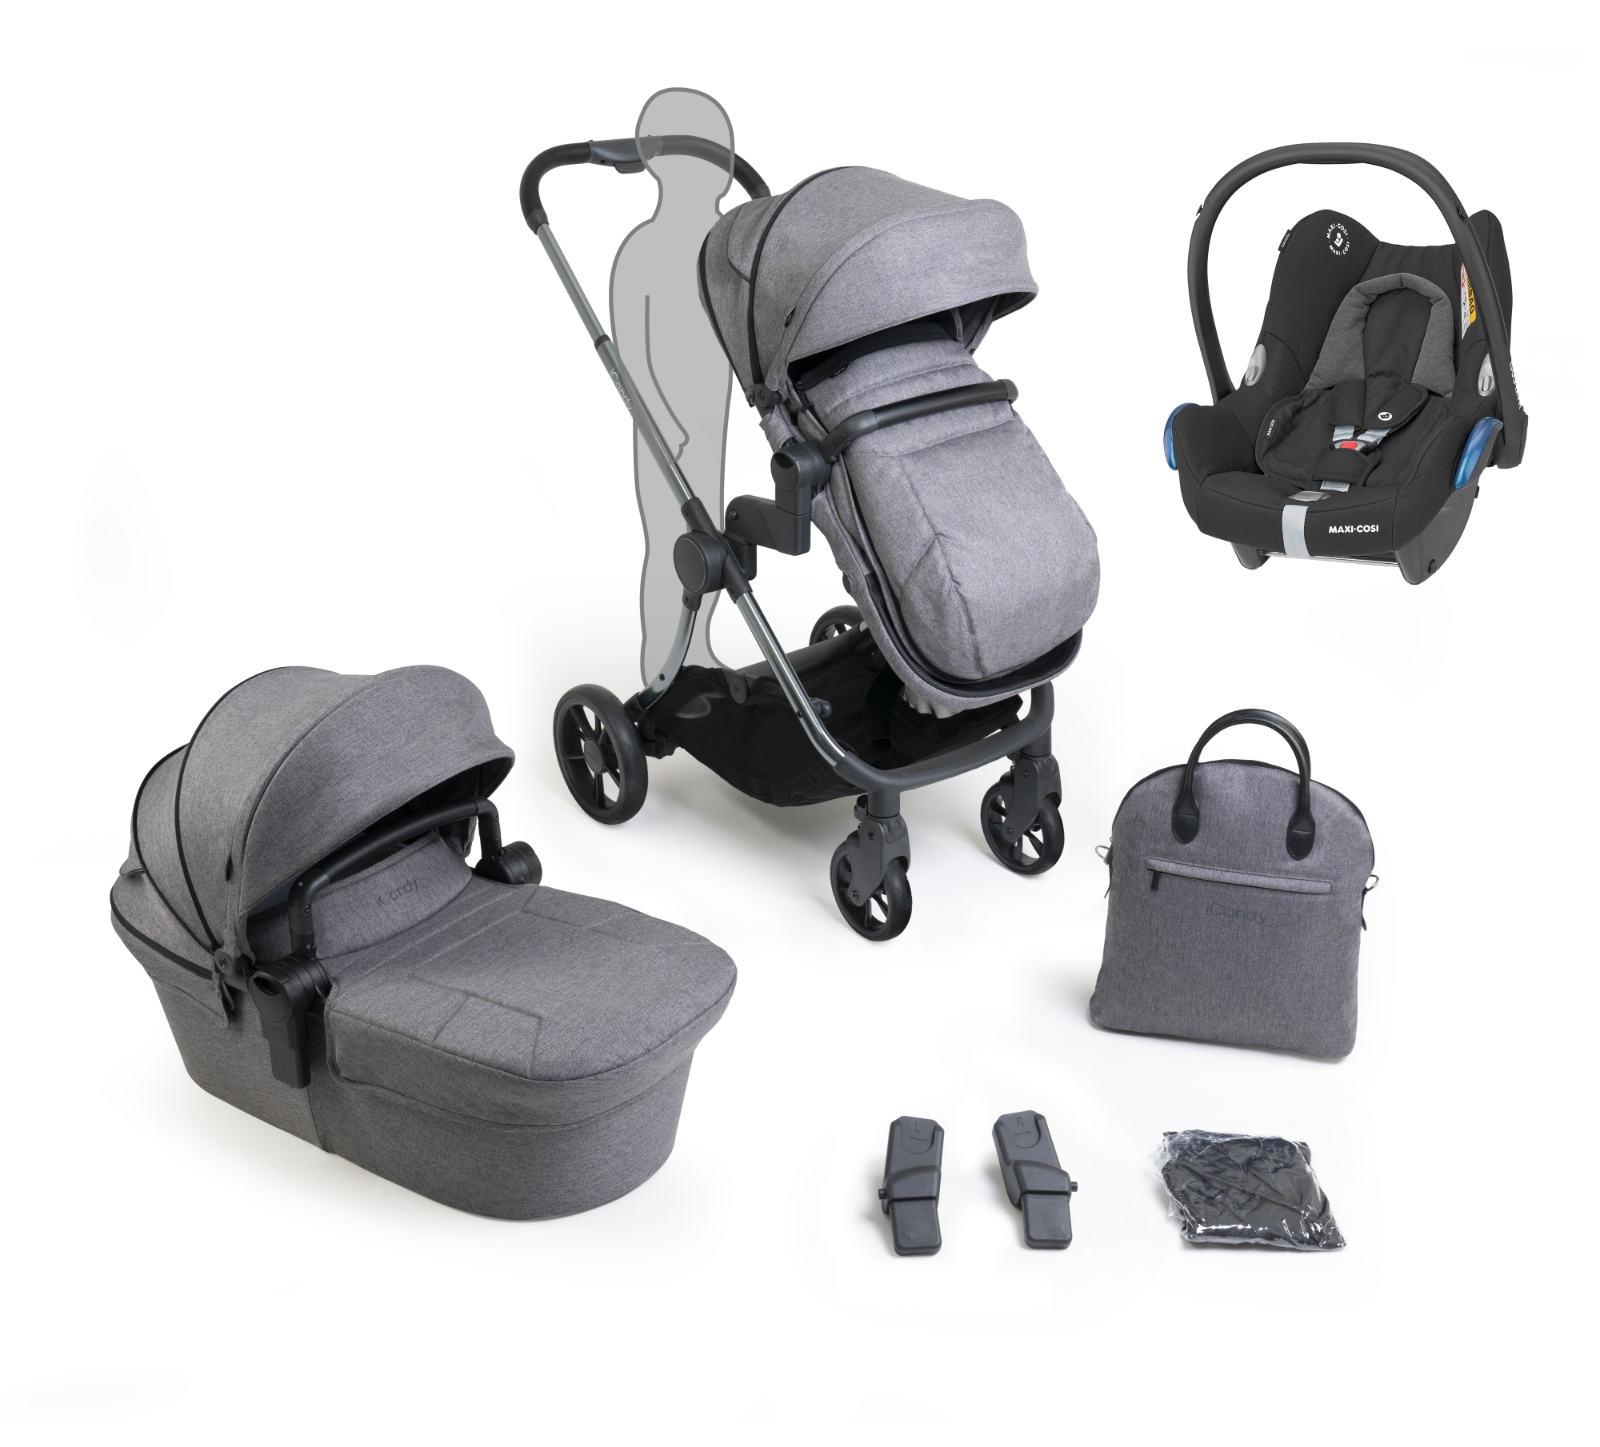 iCandy Lime Lifestyle Range Bundle - Charcoal